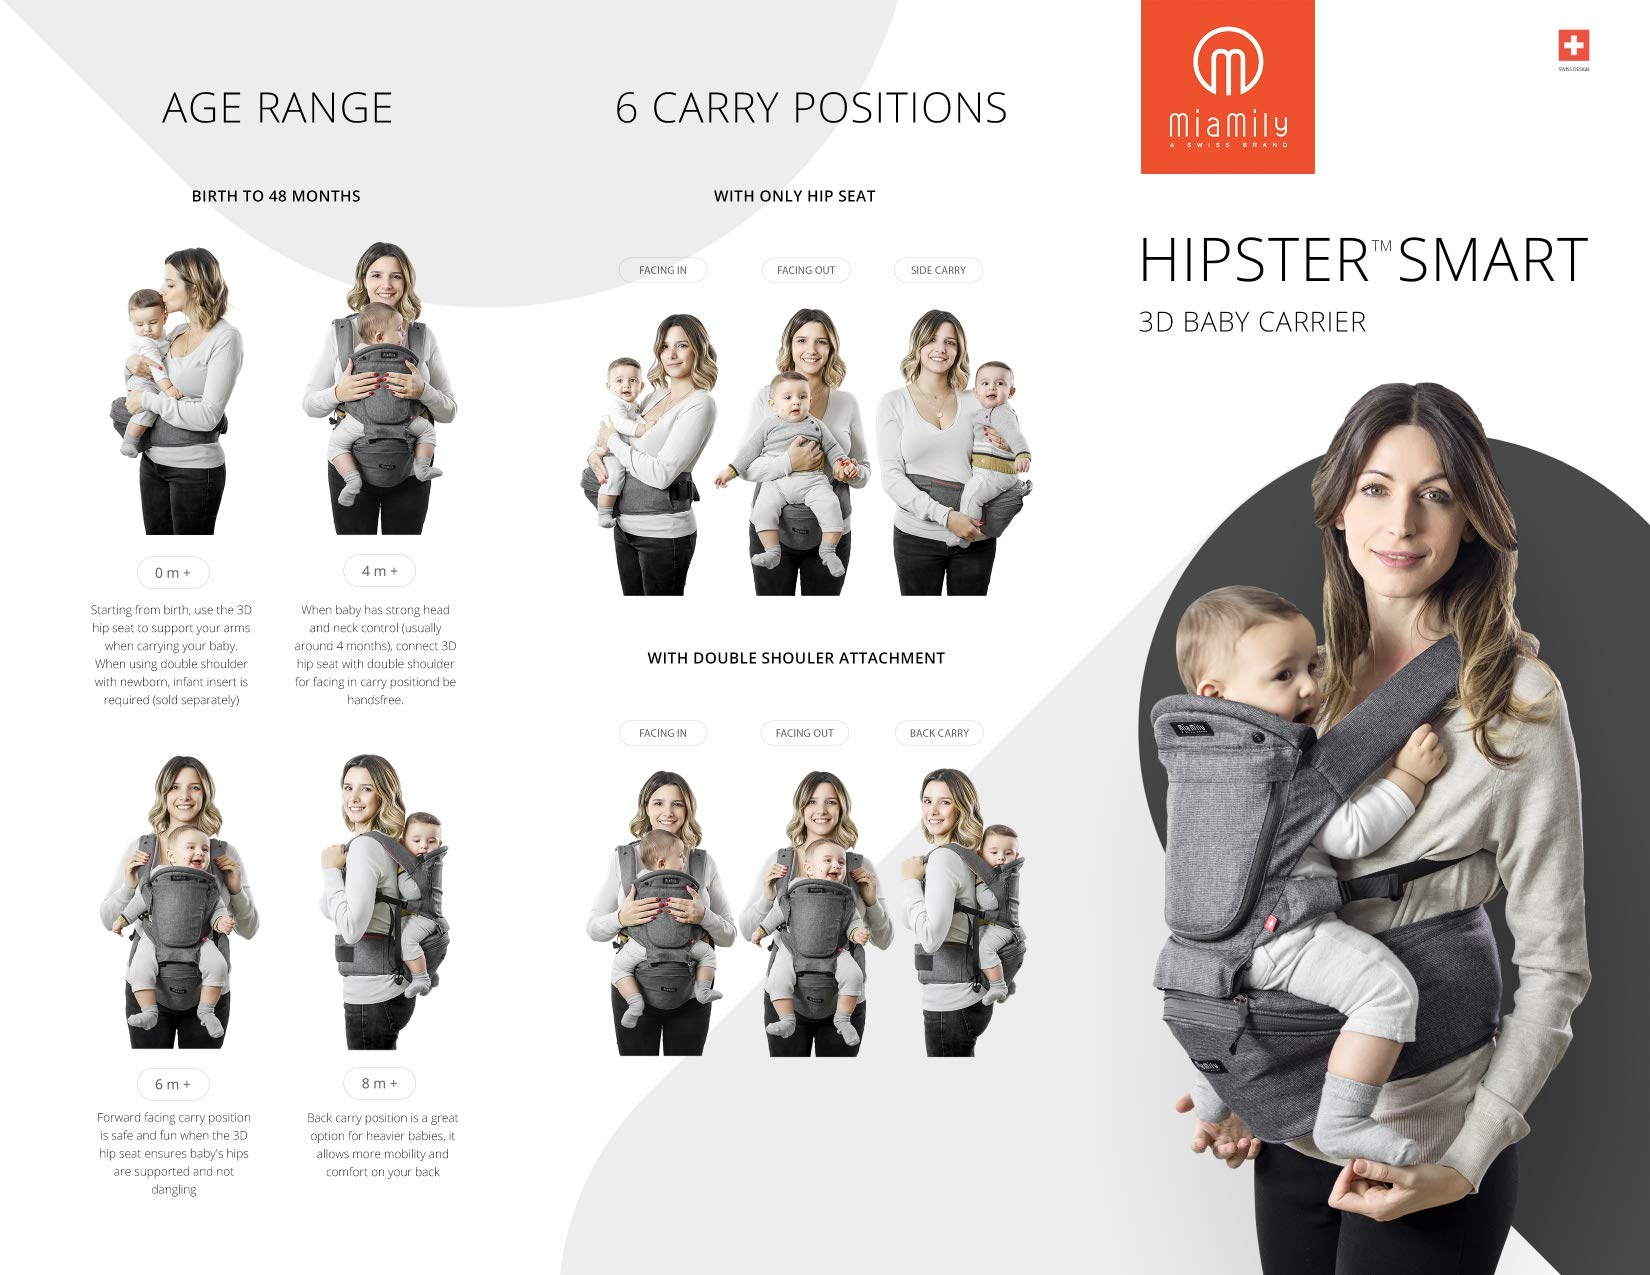 MiaMily HipsterTM Smart - The New Revolutionary 3D Baby Carrier MiaMily HIPSTER™ SMART is a 3D baby carrier. A 3D baby carrier is a carrier that has a built-in 3D hip seat incorporated to the structure and this makes ALL THE DIFFERENCE. Ergonomic for the baby Ergonomic for the parent 5